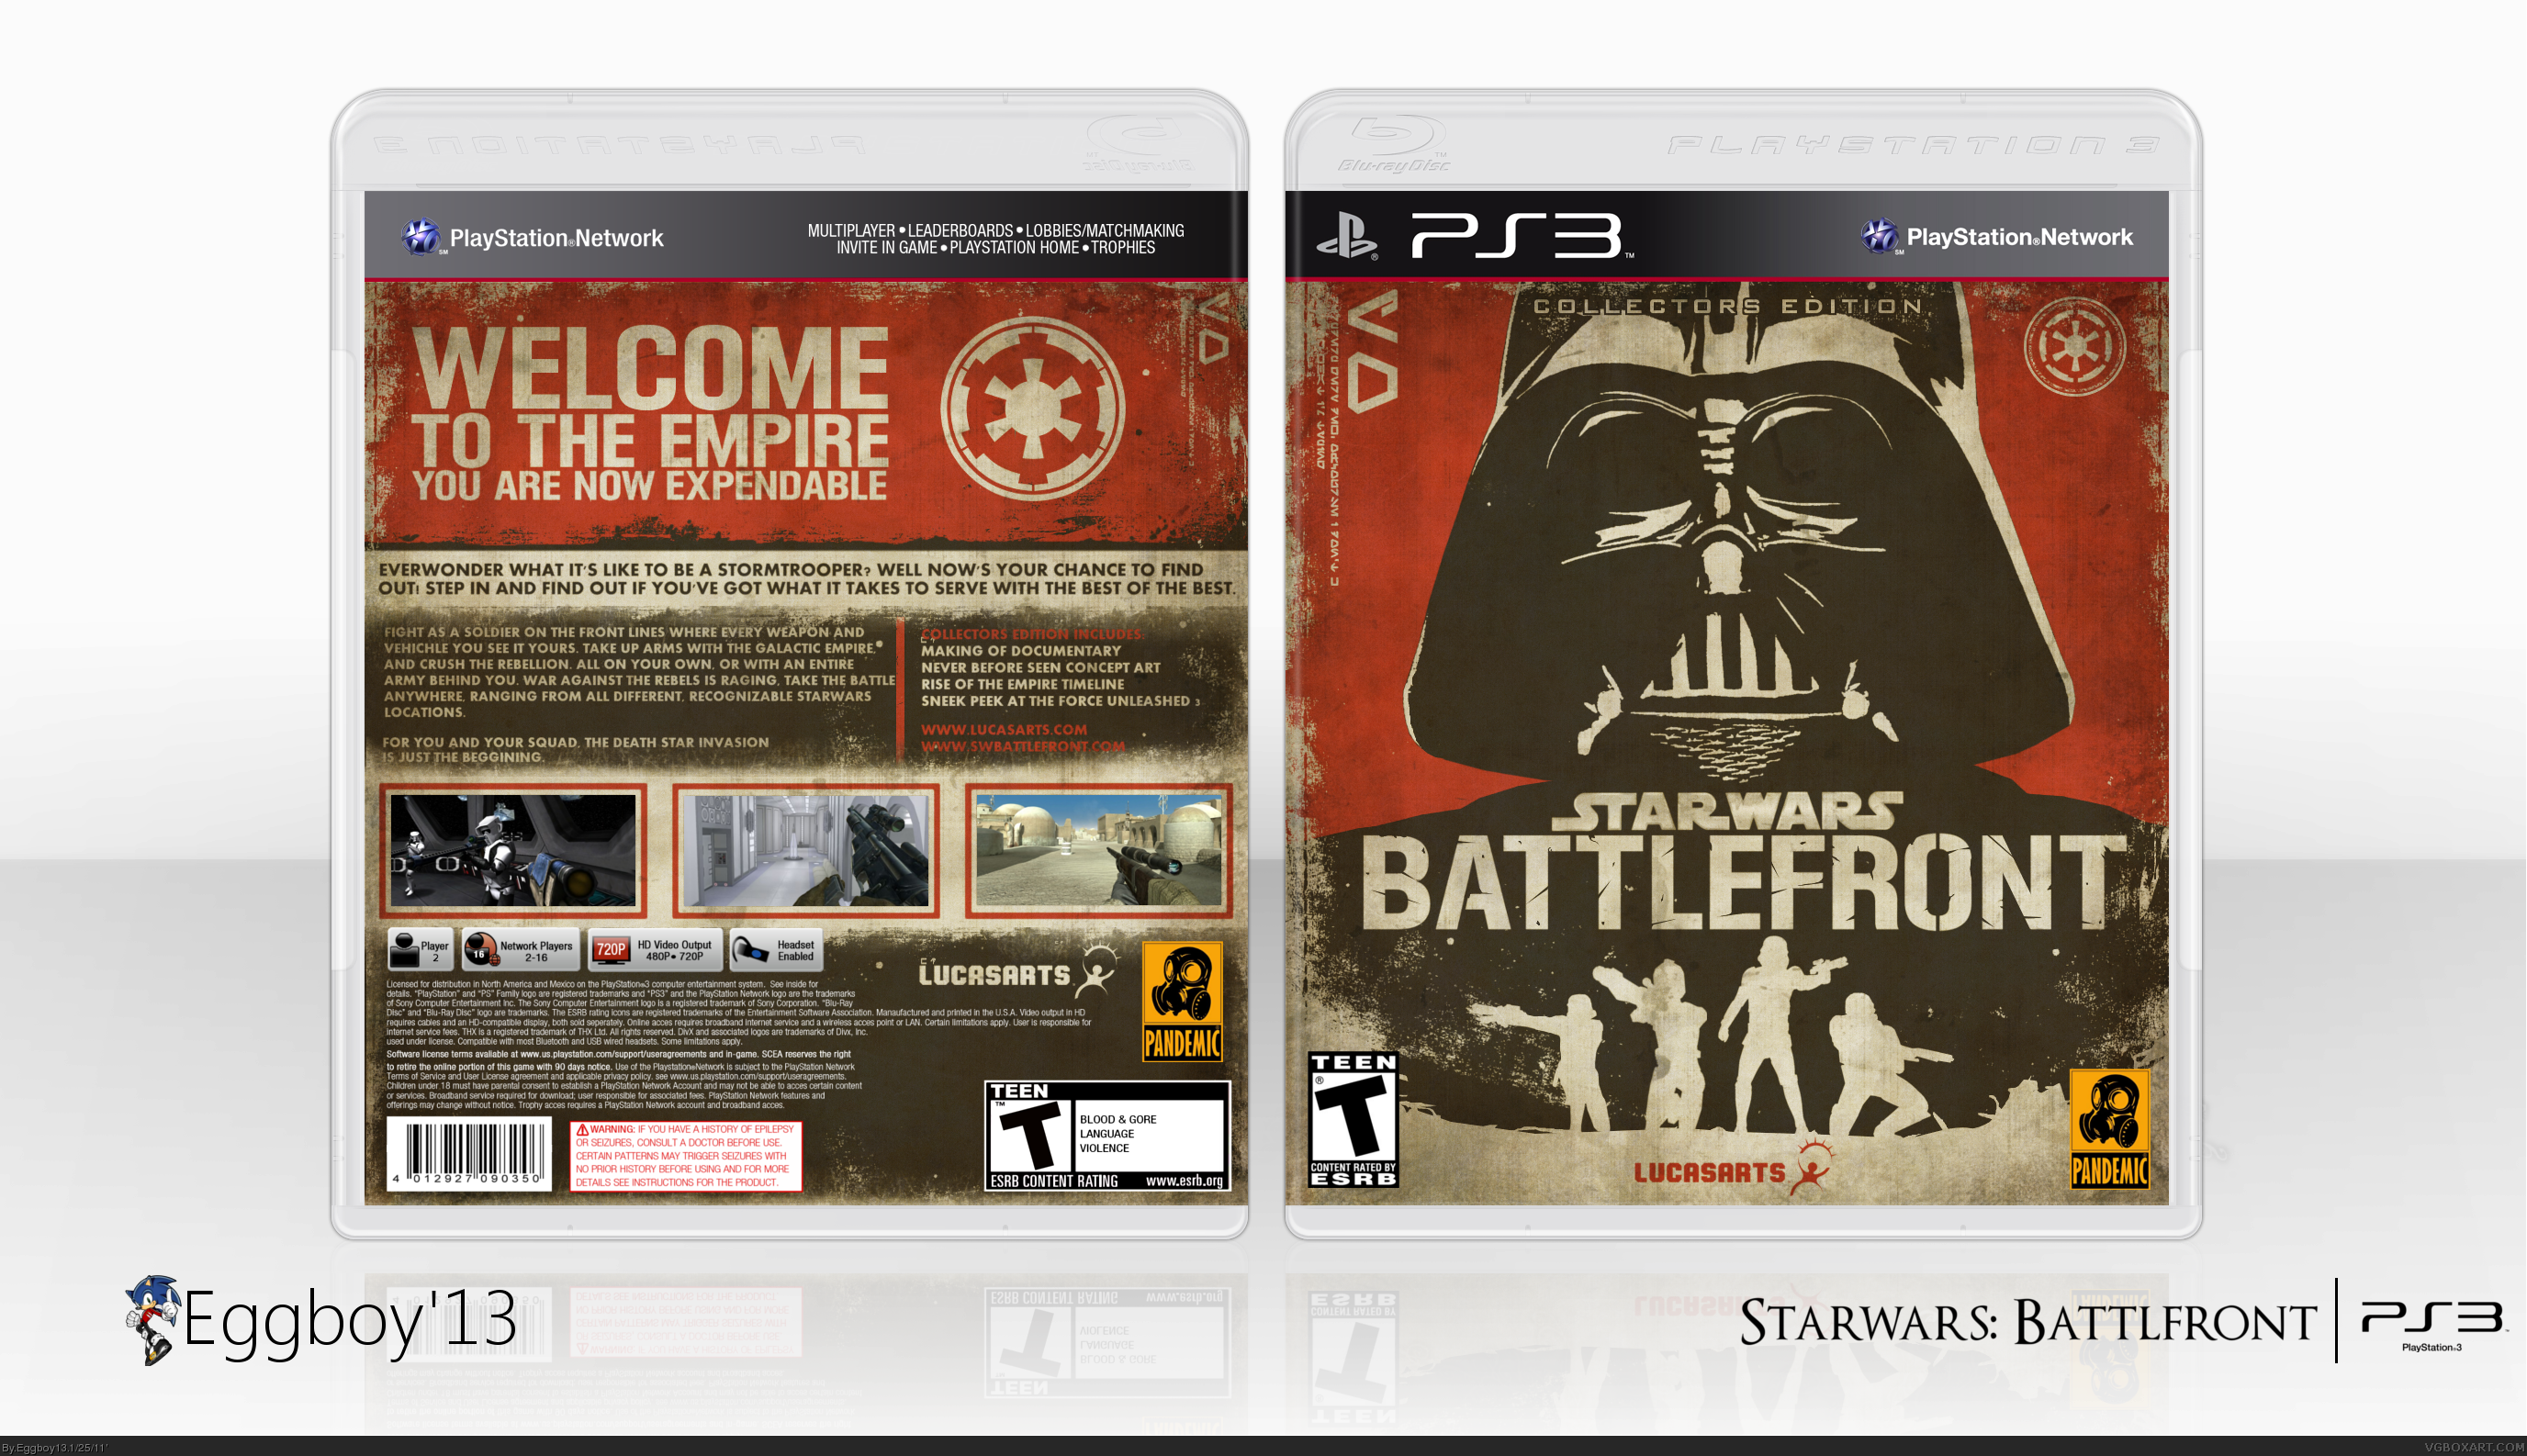 Star Wars: Battlefront box cover